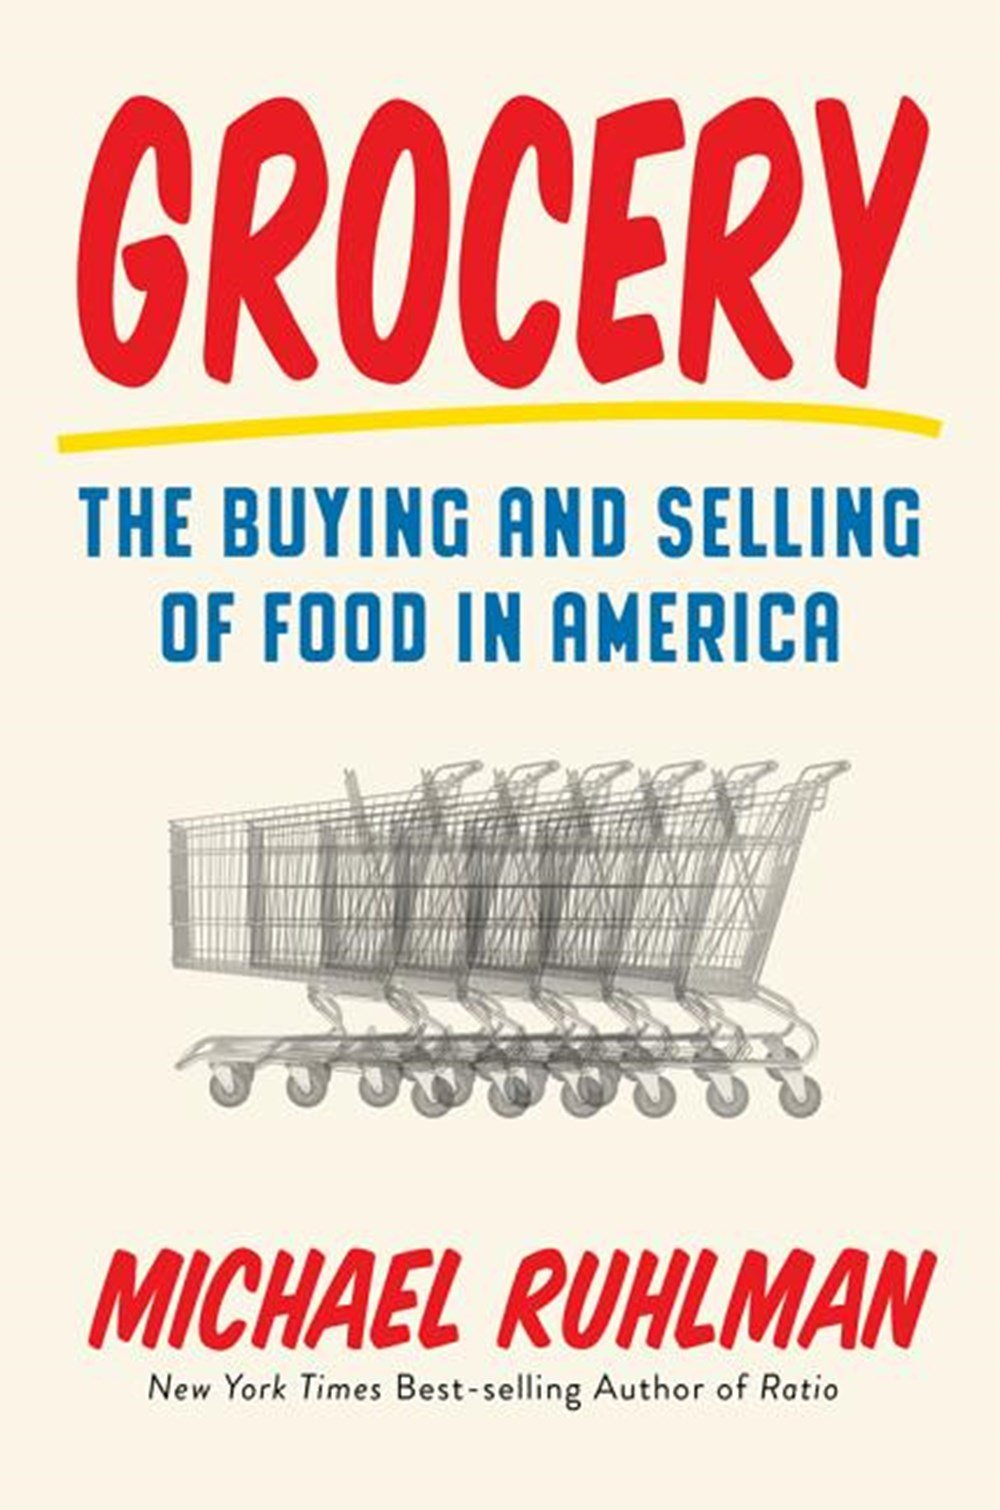 Grocery The Buying and Selling of Food in America